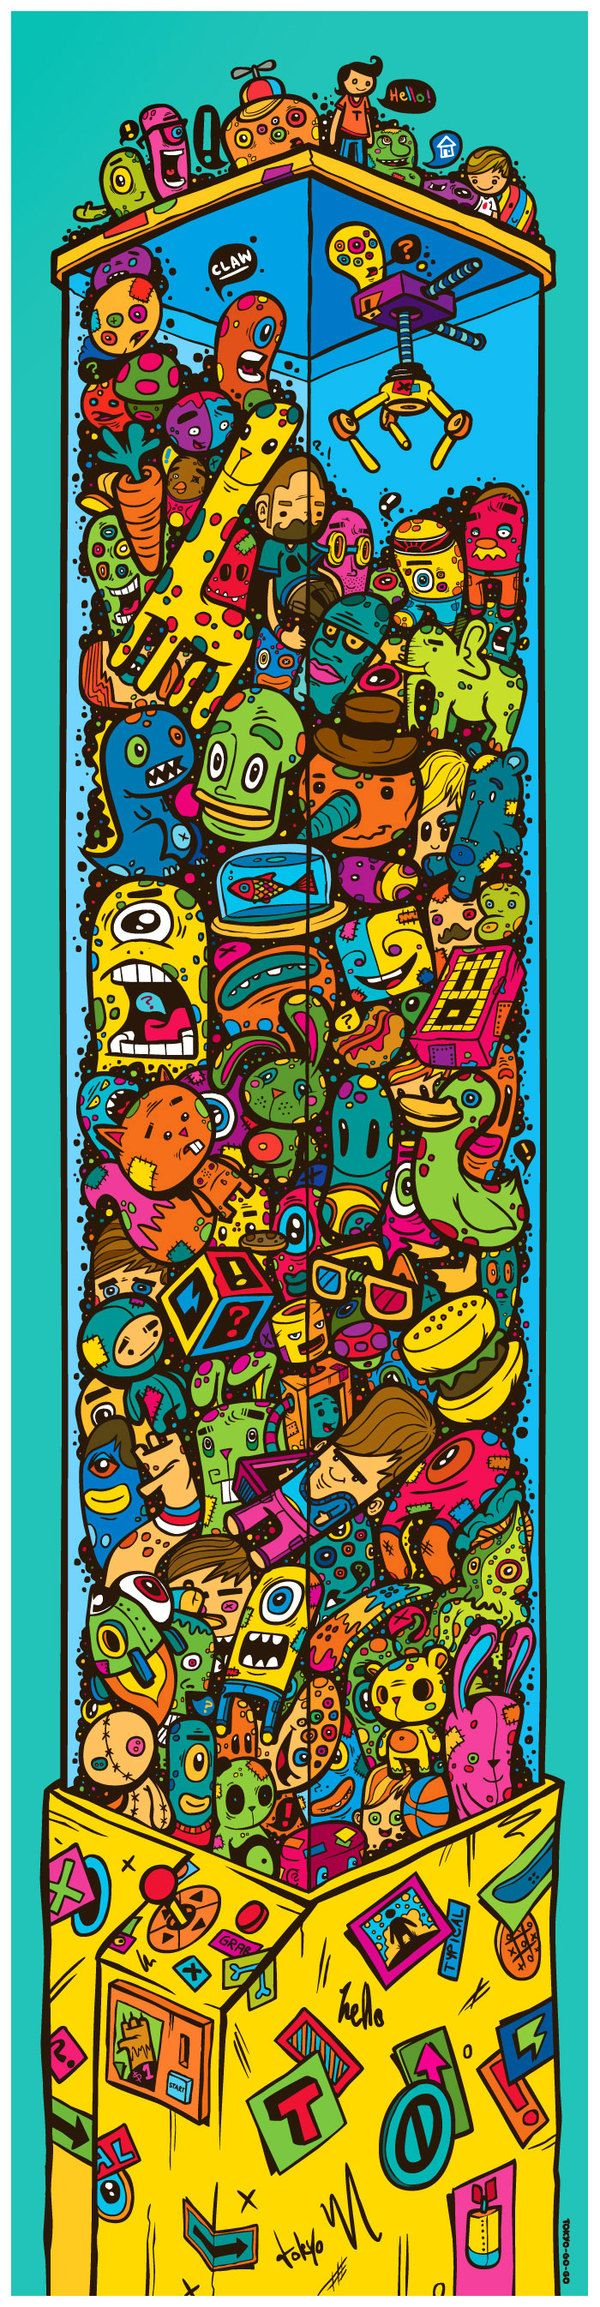 Illustrations 2011 by Greg Darroll , via Behance